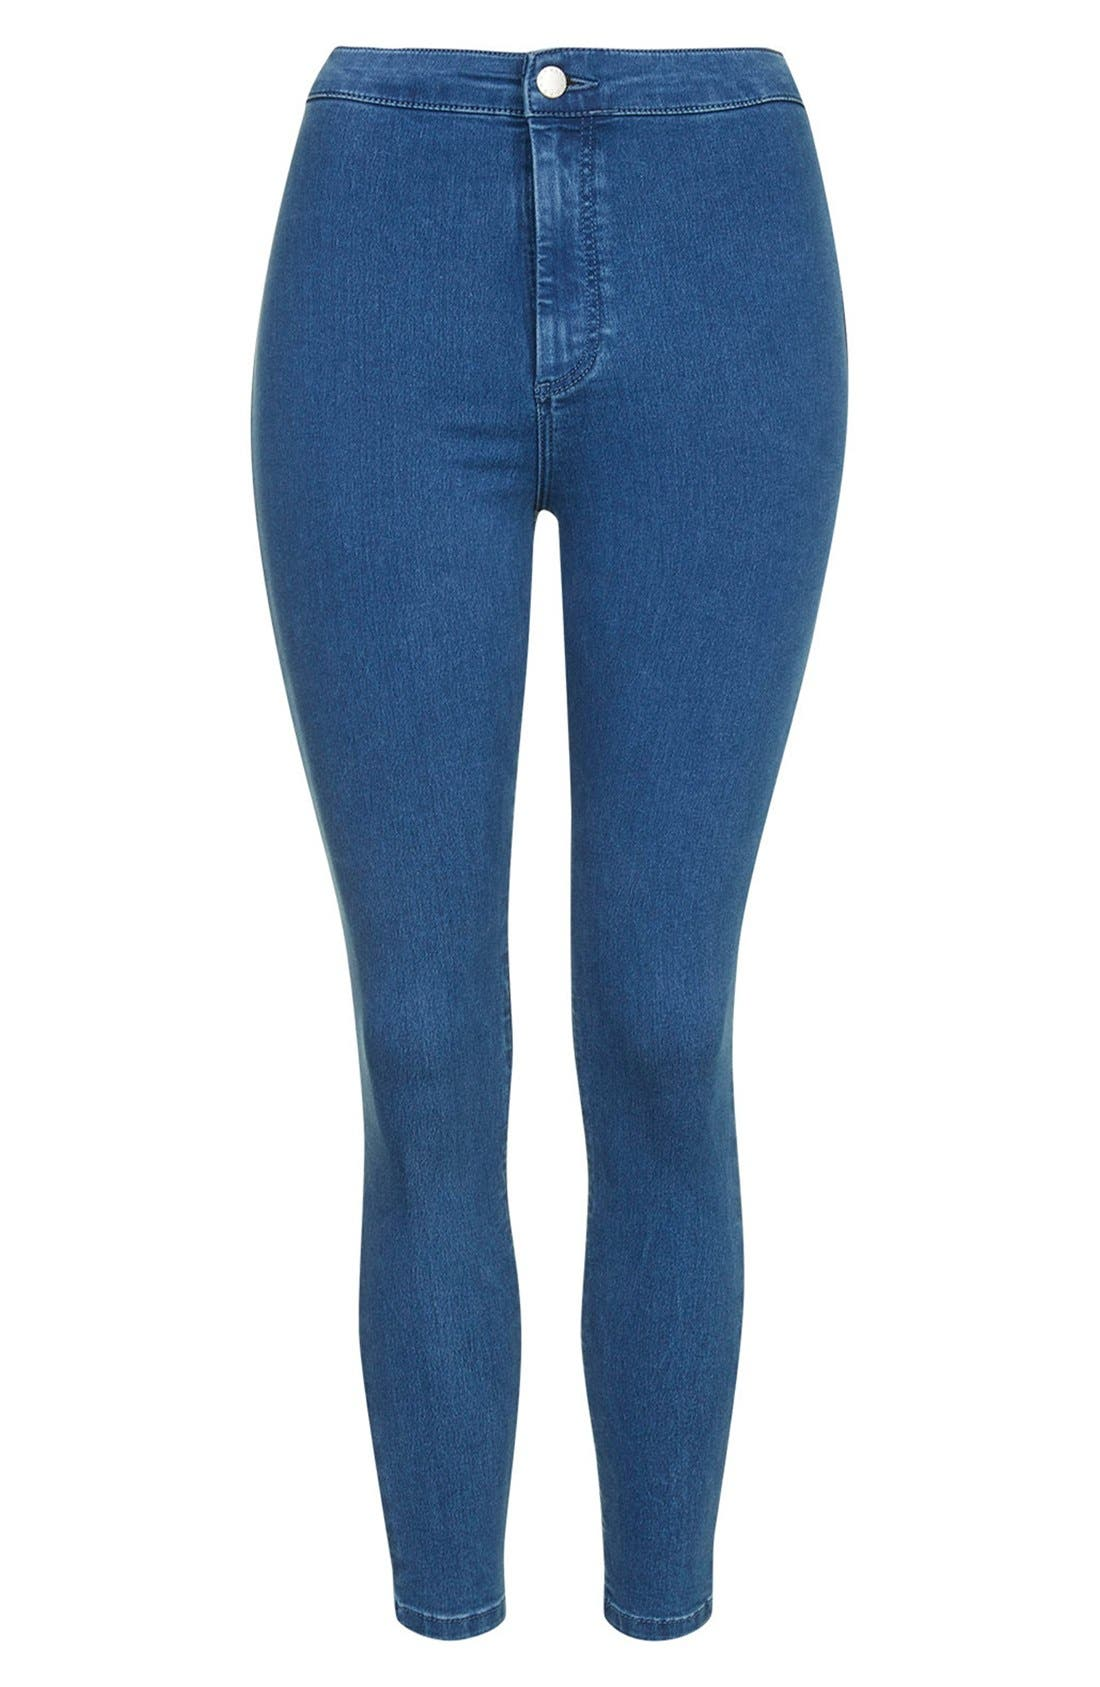 Alternate Image 4  - Topshop Moto 'Joni' High Rise Super Skinny Jeans (Mid Denim) (Petite)